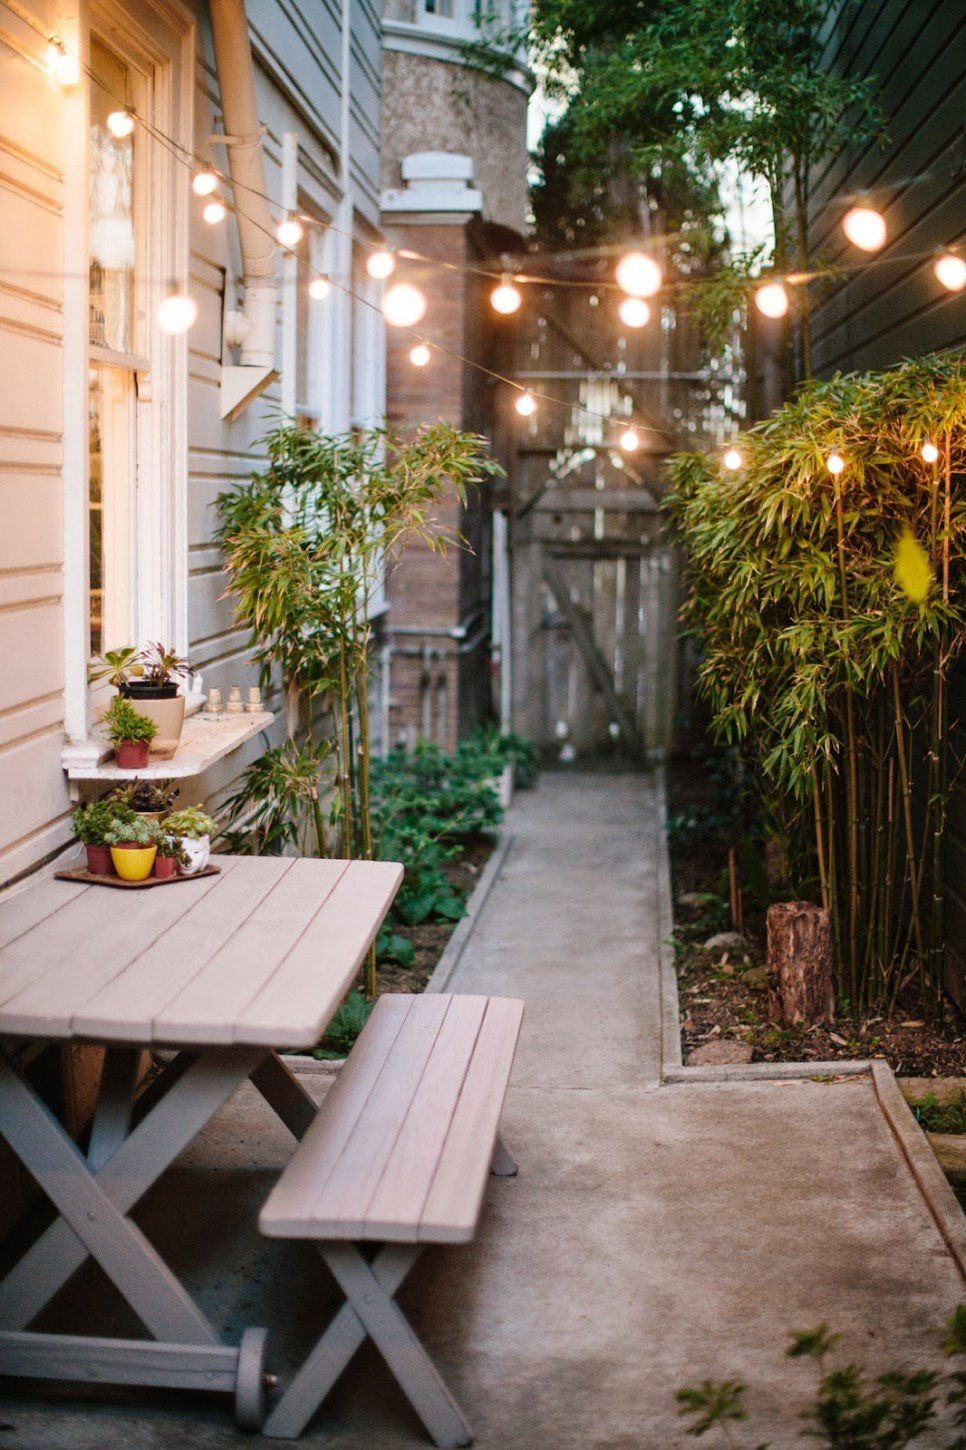 House design with garden - Garden And Patio Beautiful Small And Narrow Side Yard House Design With Hanging Lamp Concrete